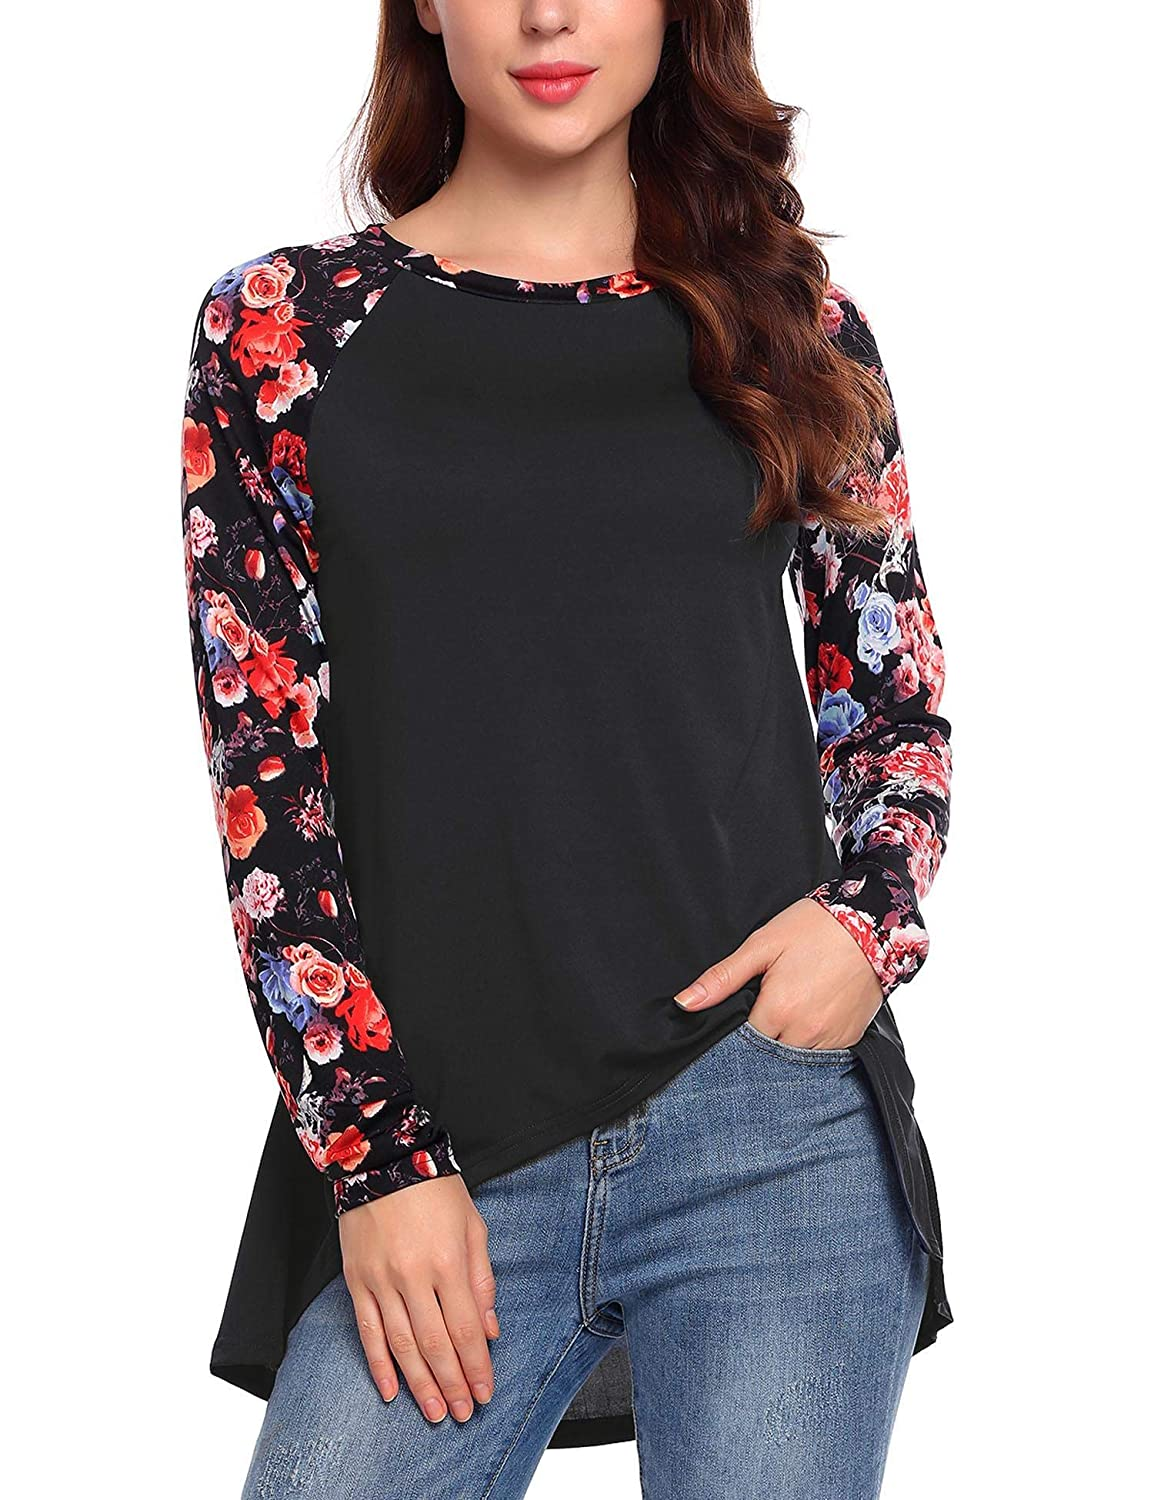 2a3439dd Feature: Floral patchwork, raglan sleeve, higw low hem, back keyhole, crew  neck, long sleeve, loose fitting cut. Casual and stylish shirt.